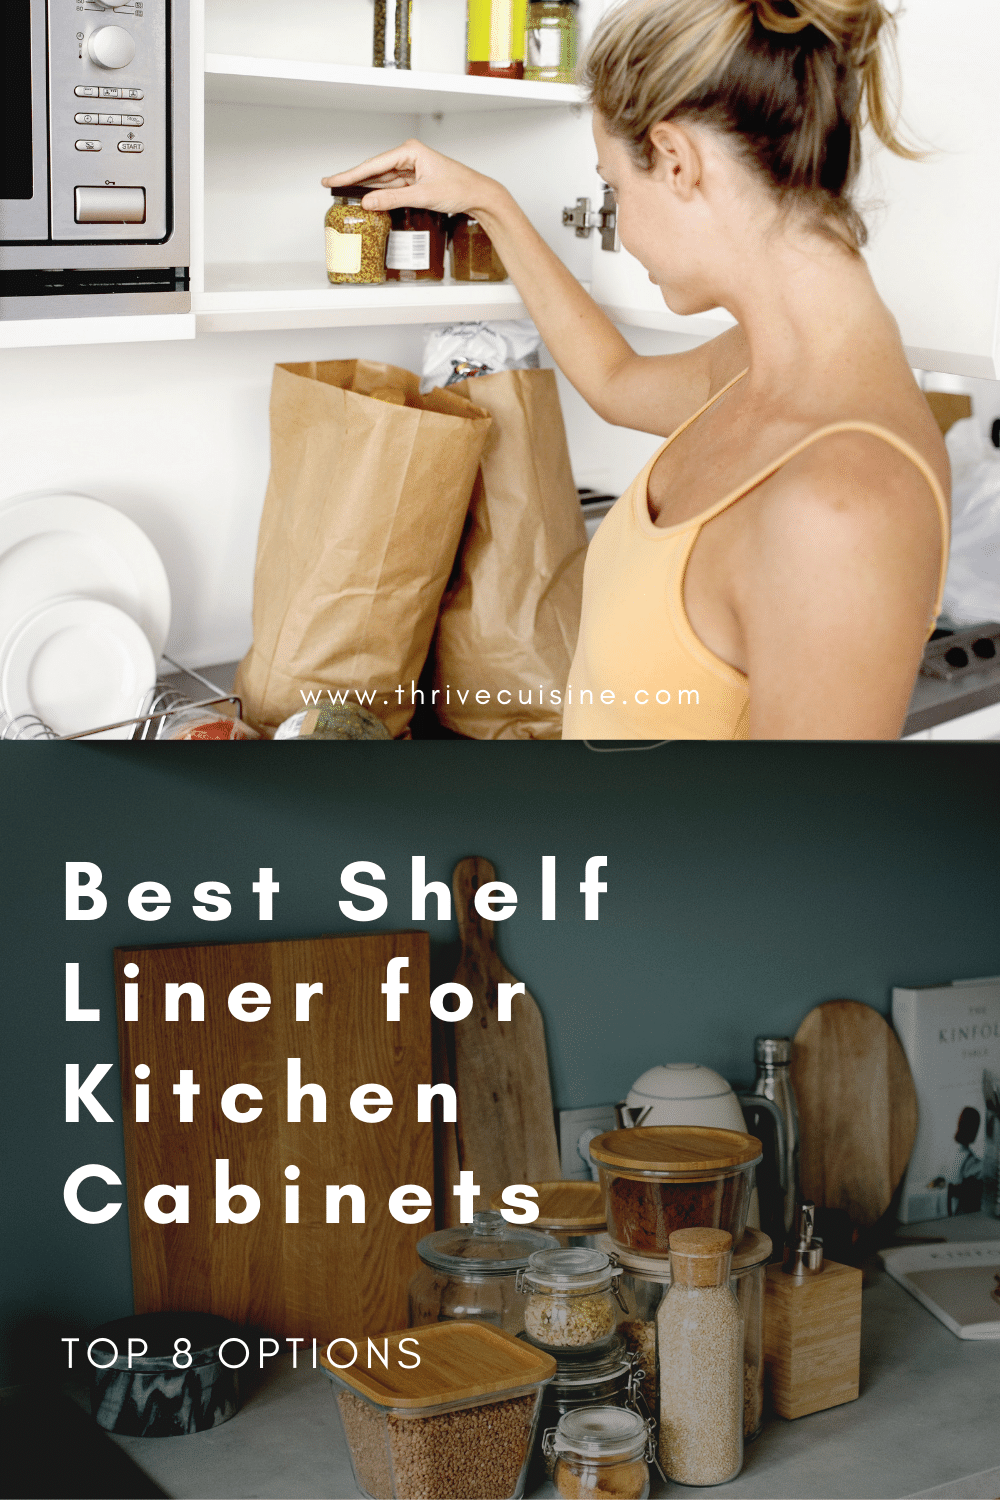 8 Best Shelf Liners For Kitchen Cabinets 2020 Edition In 2020 Kitchen Shelf Liner Pantry Shelf Liner Kitchen Cabinet Shelves